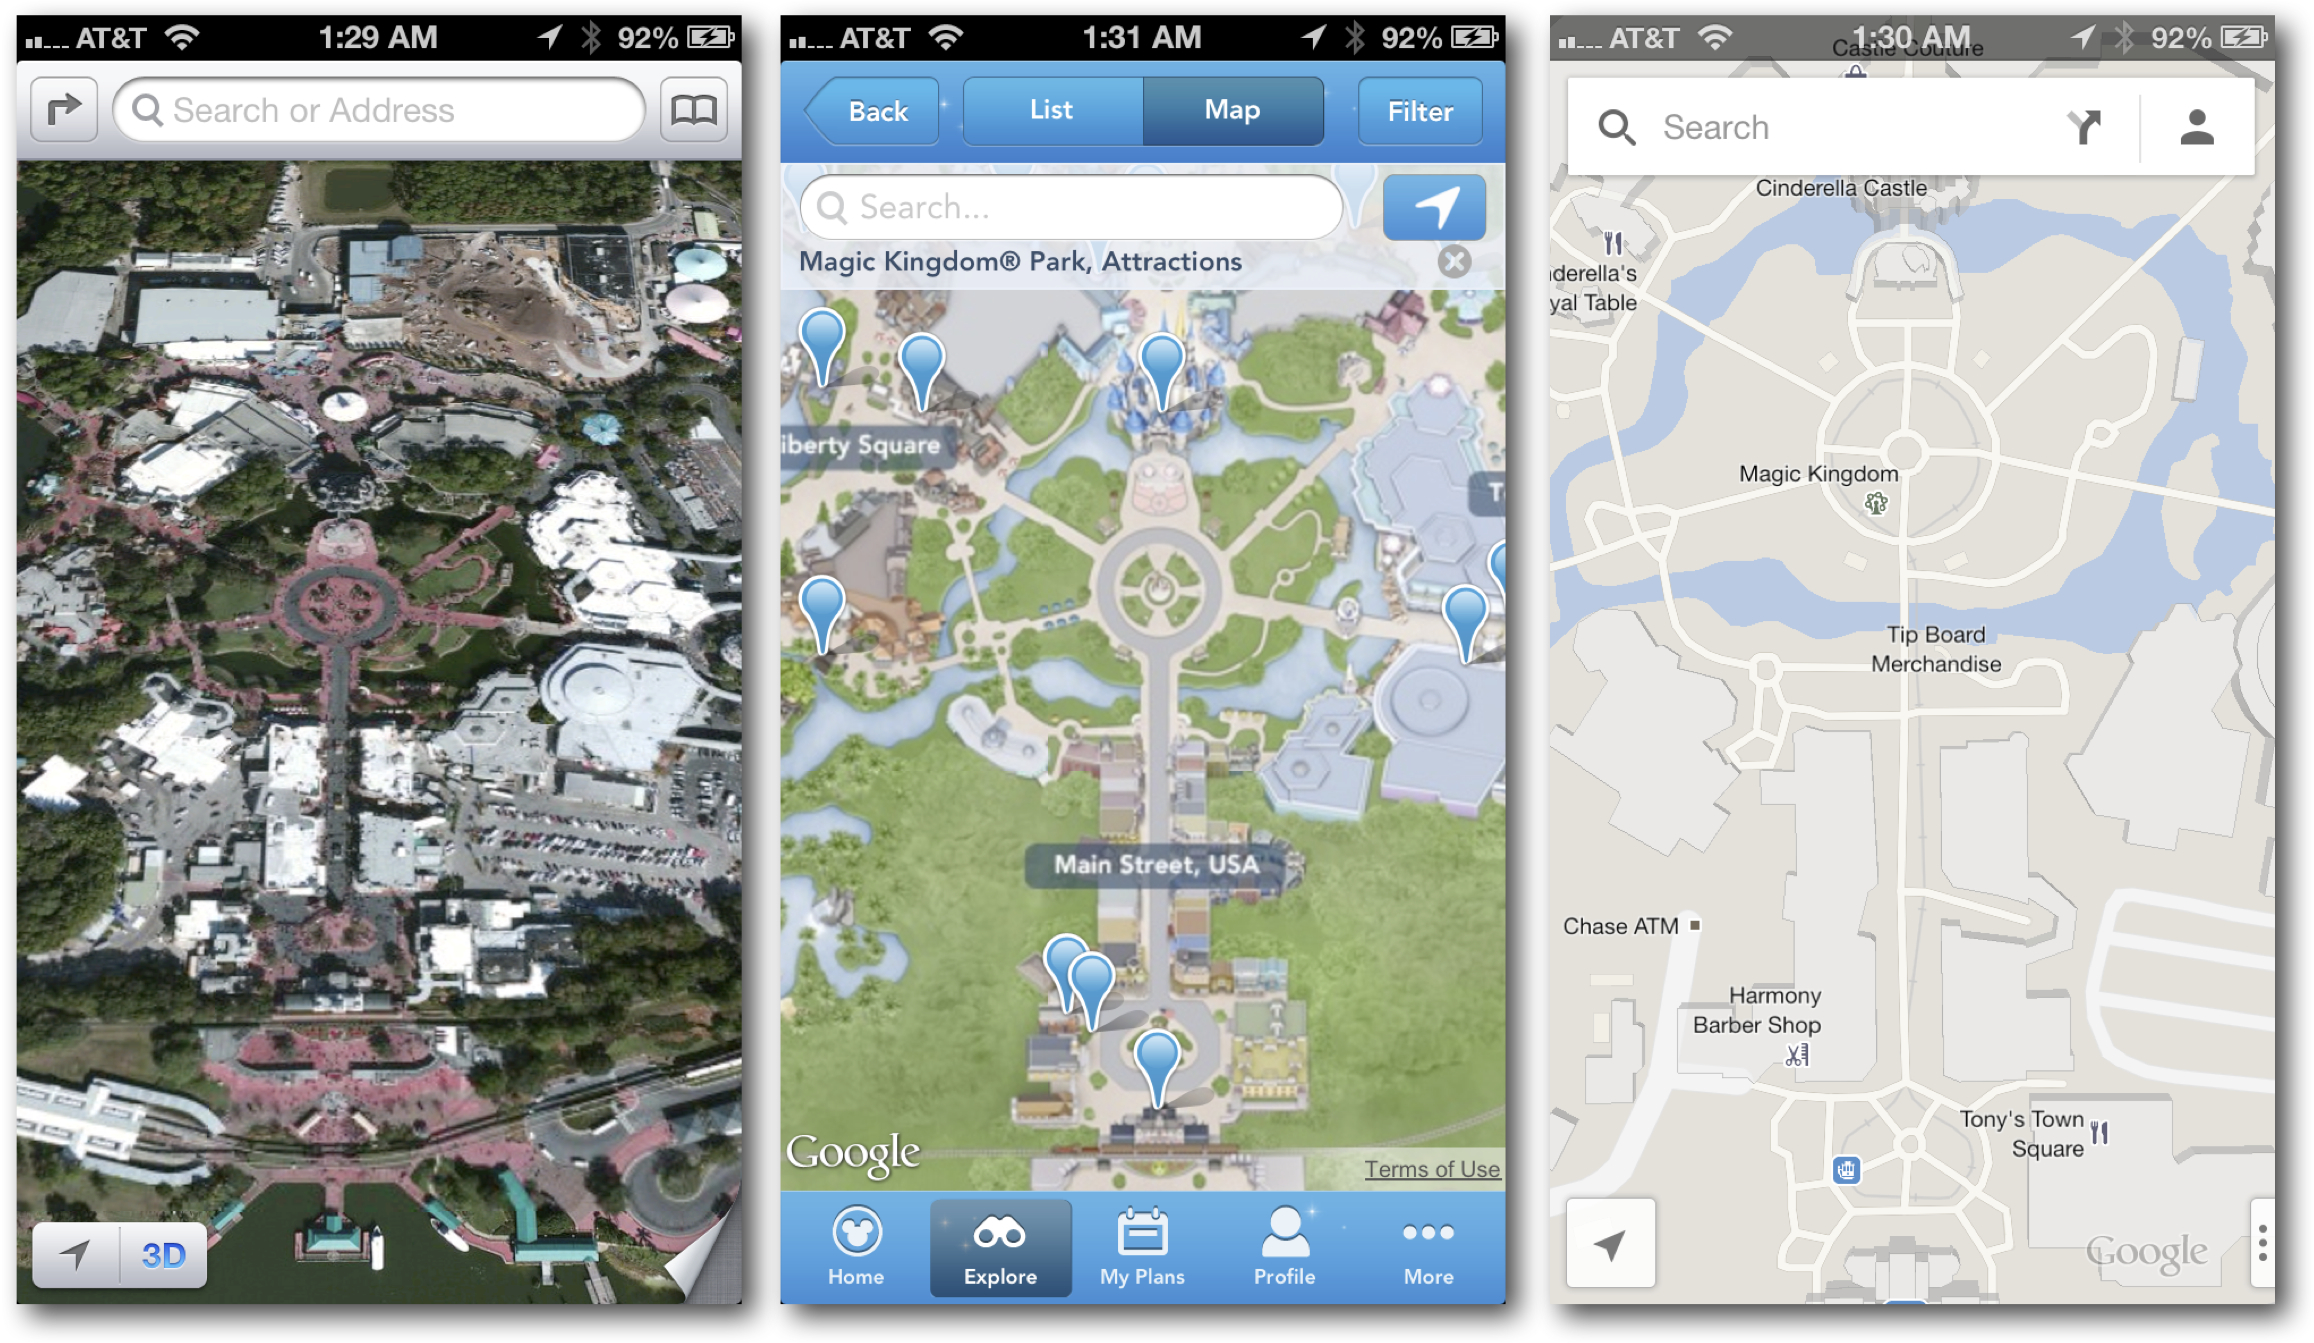 Searchable Maps of Nearby Attractions